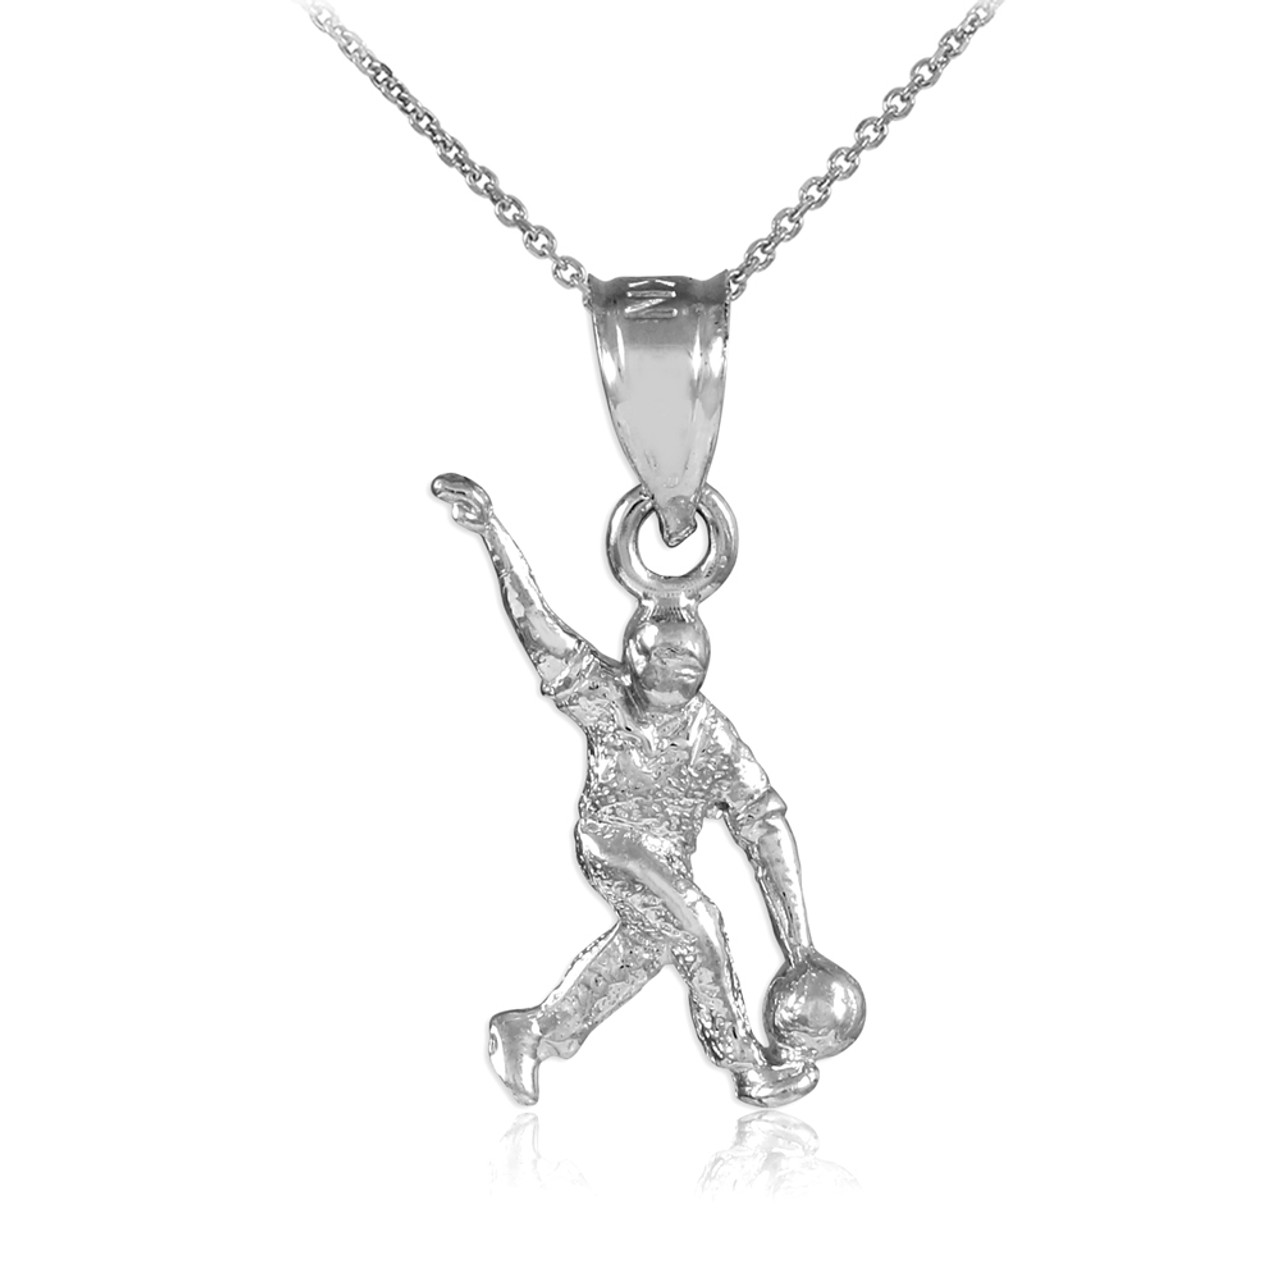 White gold bowling man charm sports pendant necklace gold bowling white gold bowling man charm sports pendant necklace aloadofball Images